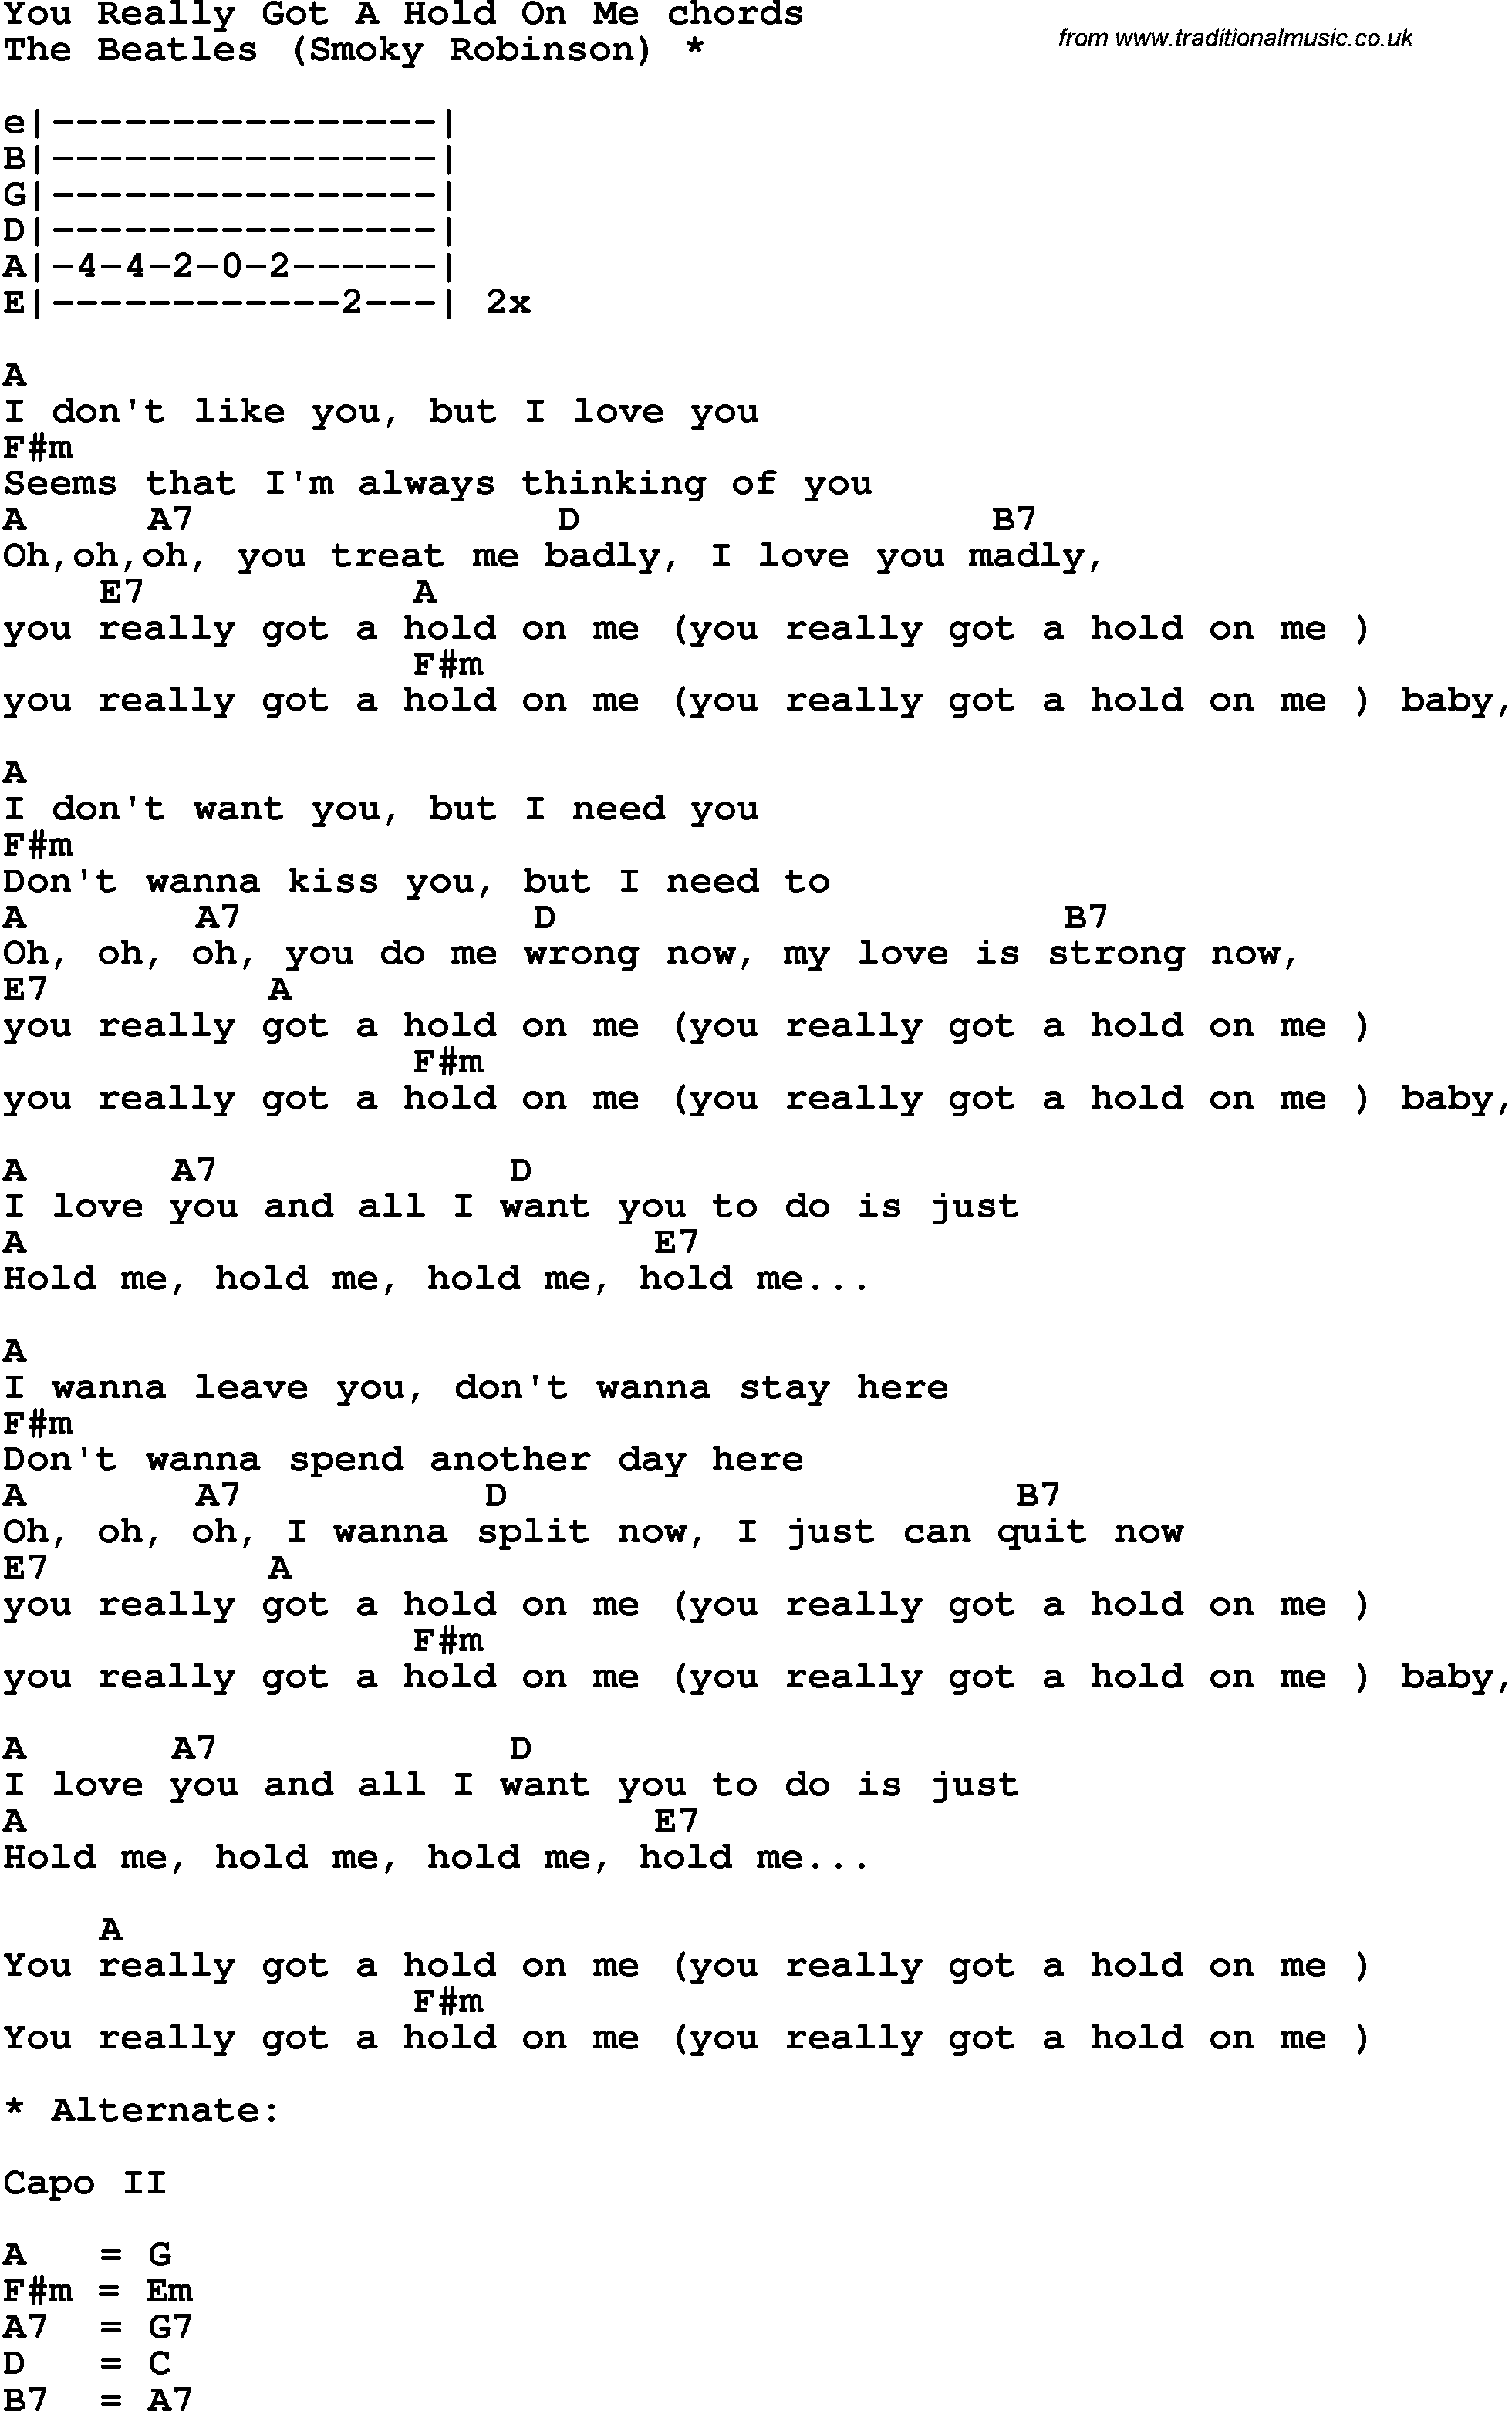 Song Lyrics With Guitar Chords For You Really Got A Hold On Me The